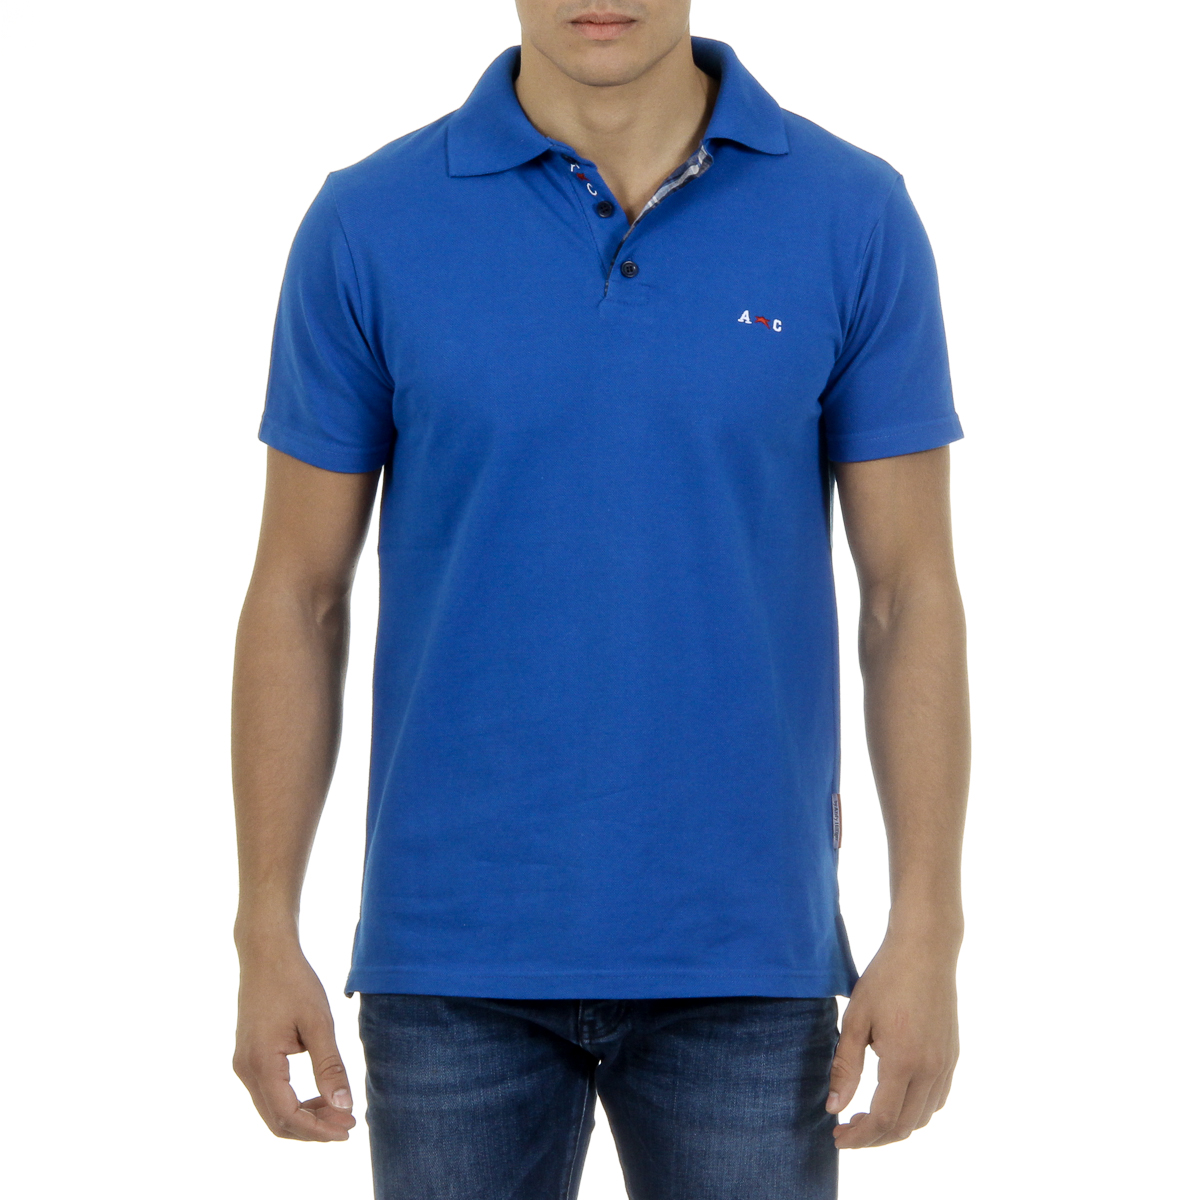 Primary image for Andrew Charles Mens Polo Short Sleeves Blue SEMELO